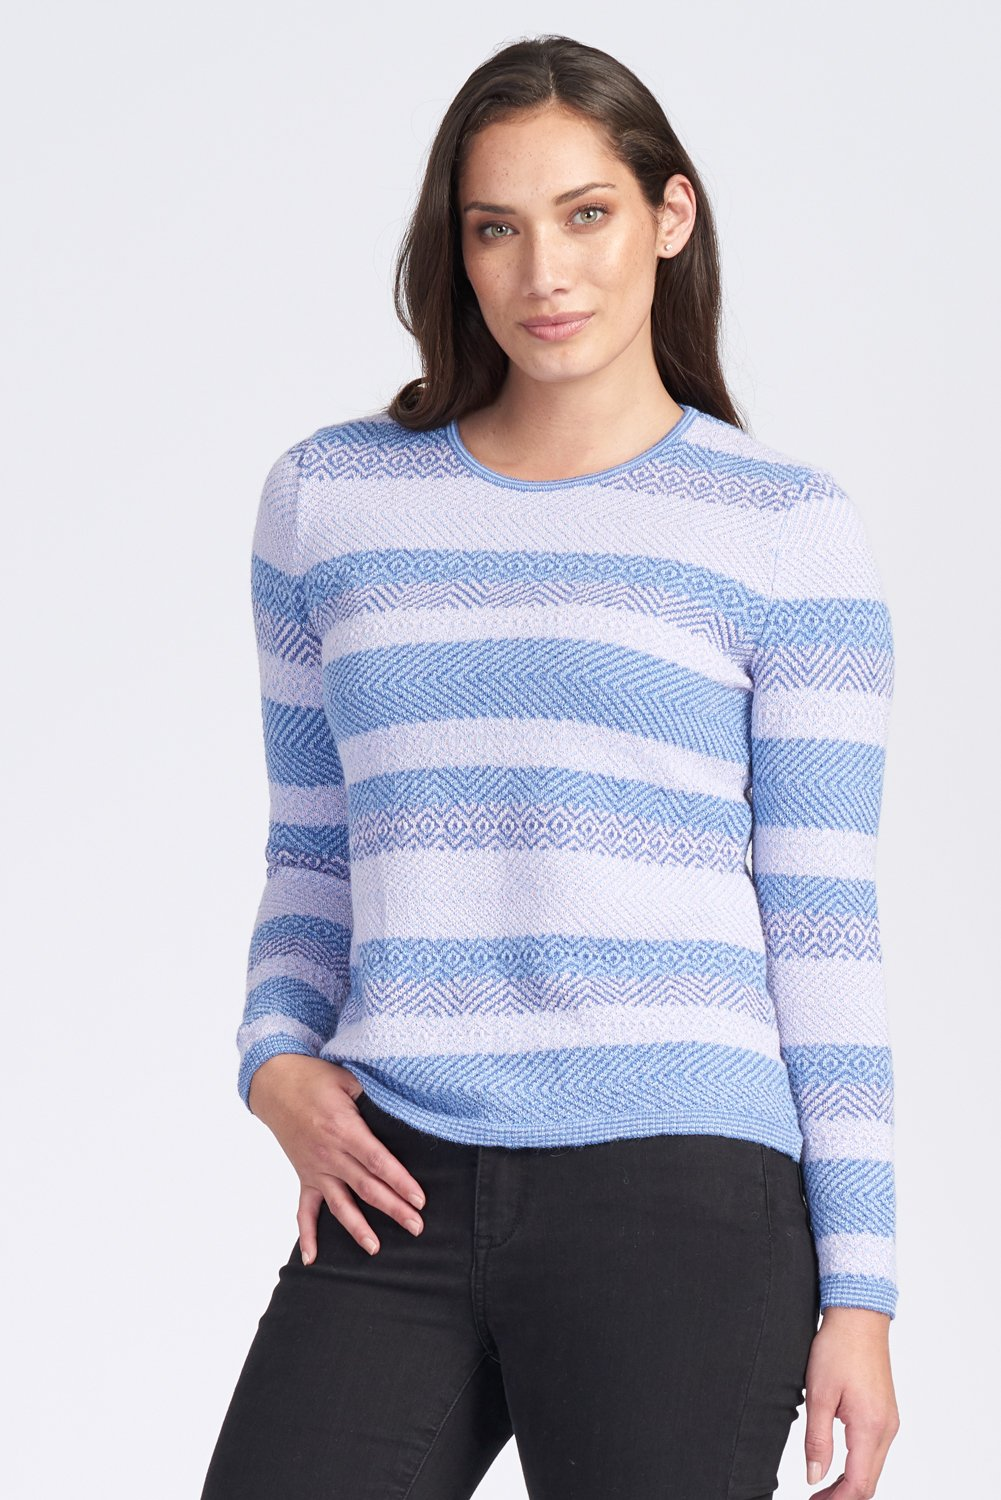 L/S CREW NECK JACQUARD JUMPER - Woolshed Gallery